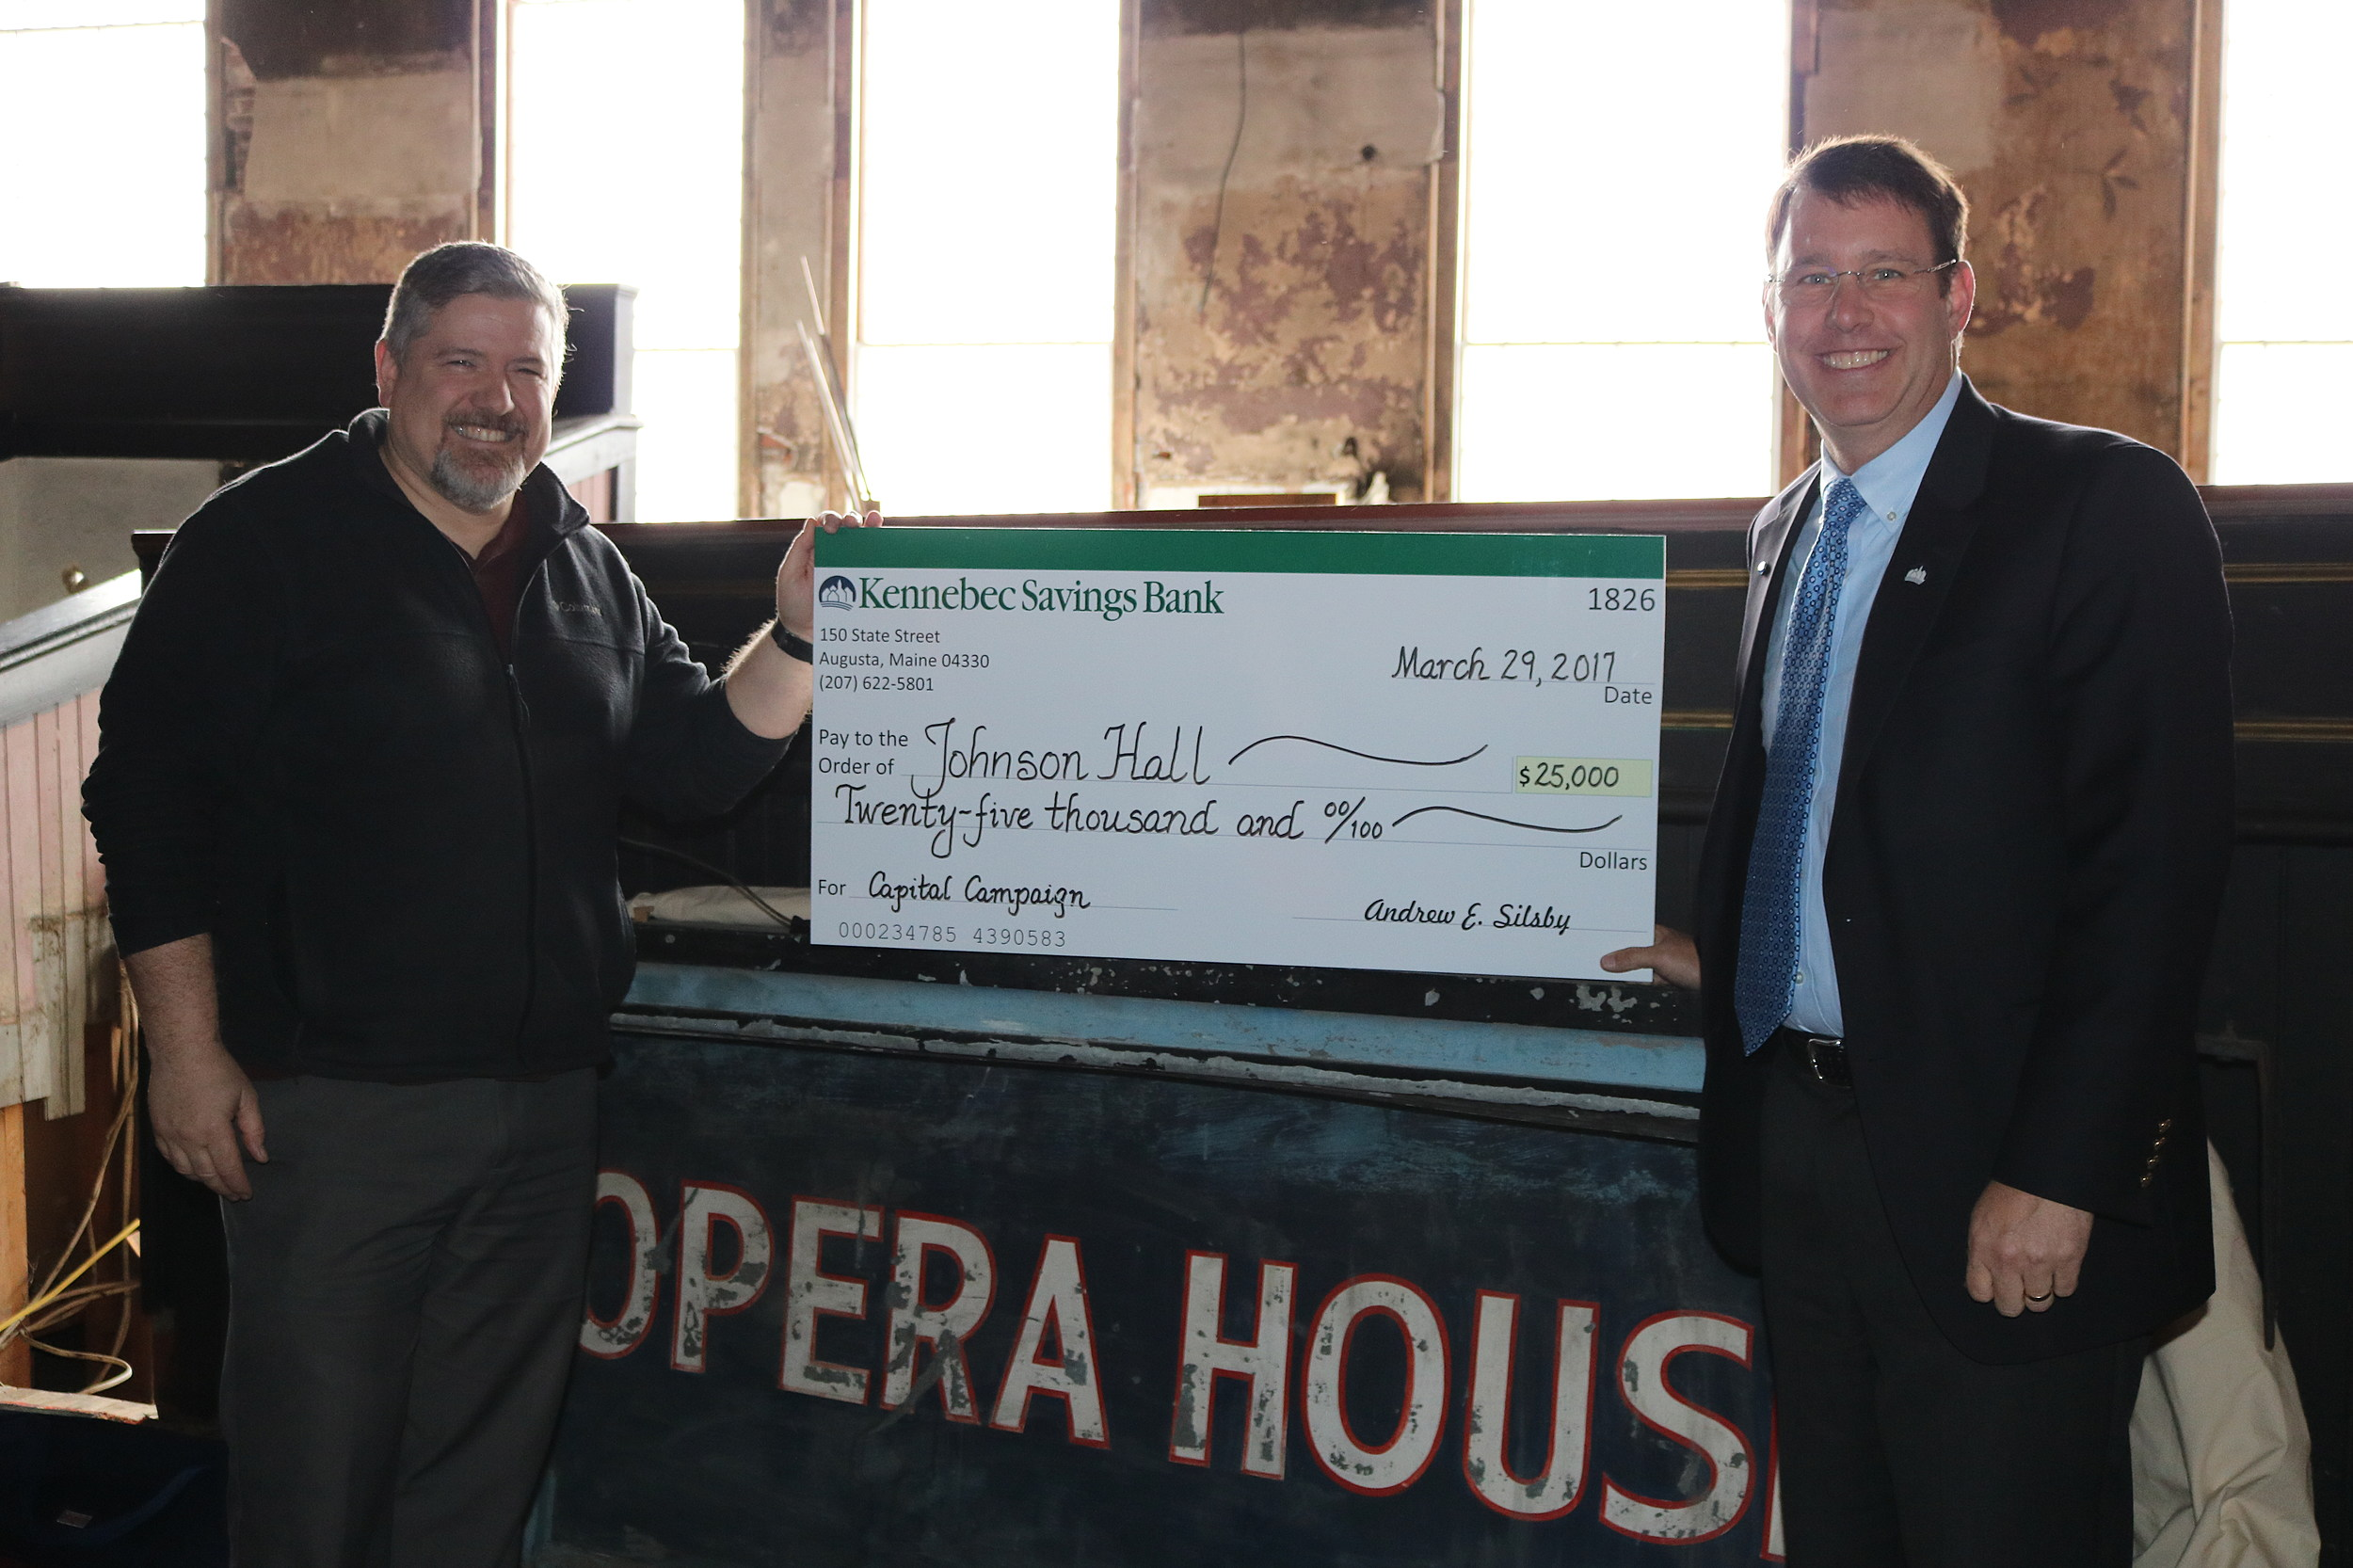 Kennebec Savings Bank President presents Johmson Hall with a check for $25K. Photo courtesy of Johnson Hall